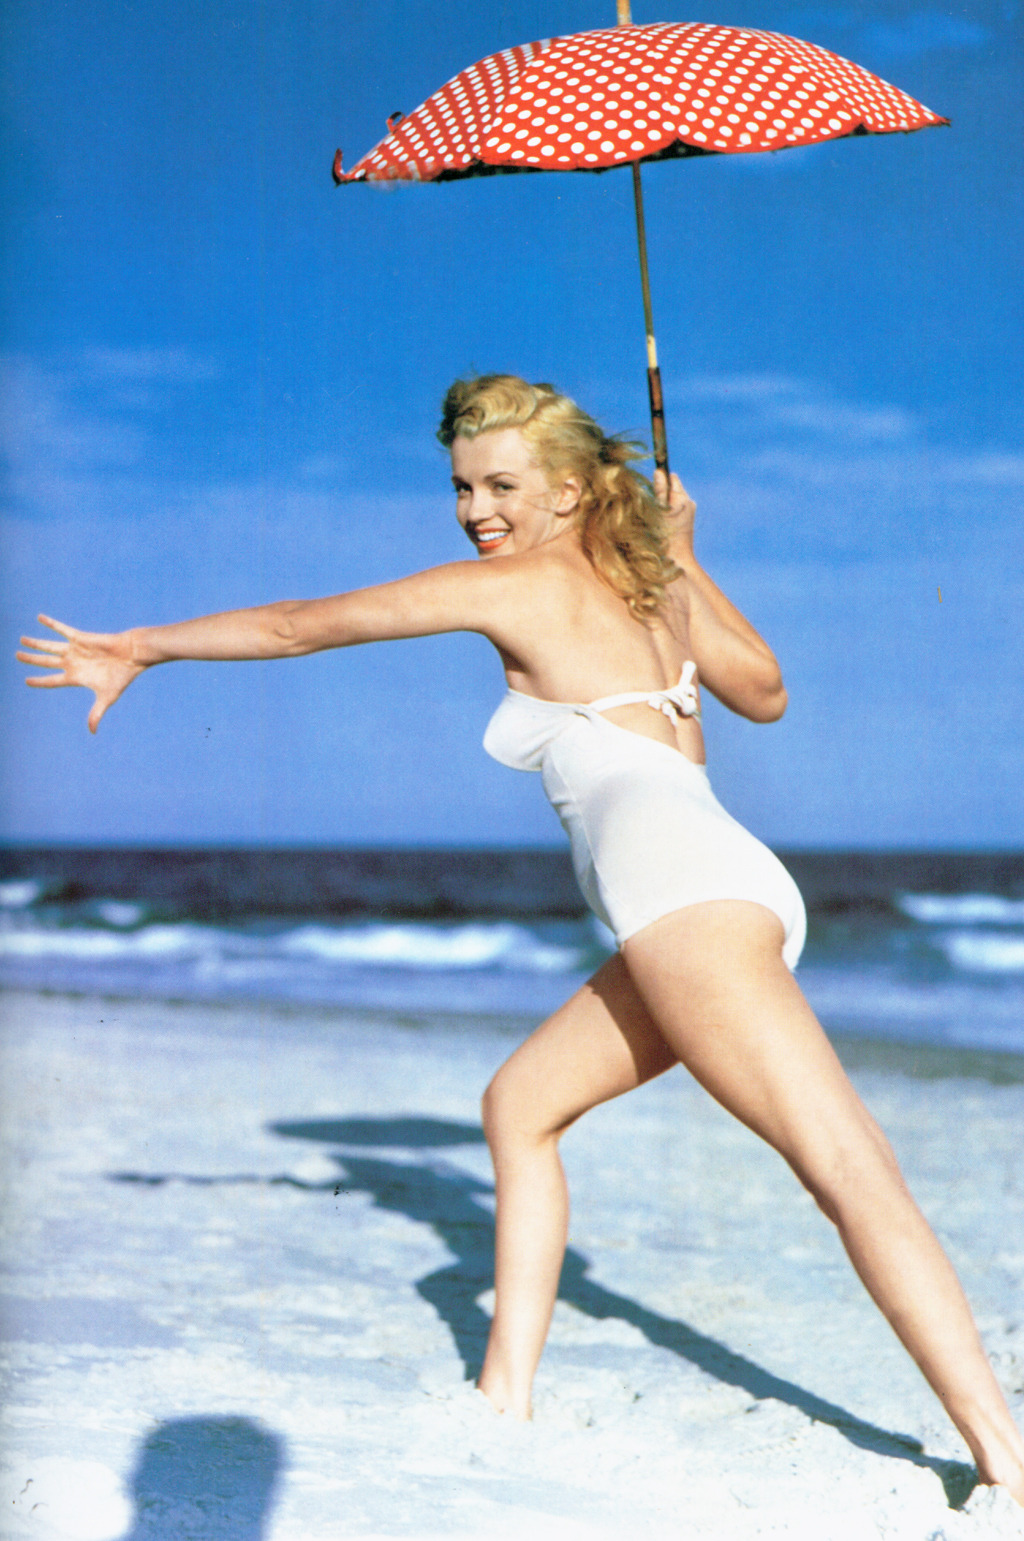 Marilyn photographed by Andre de Dienes, Toby Beach Photoshoot, 1949